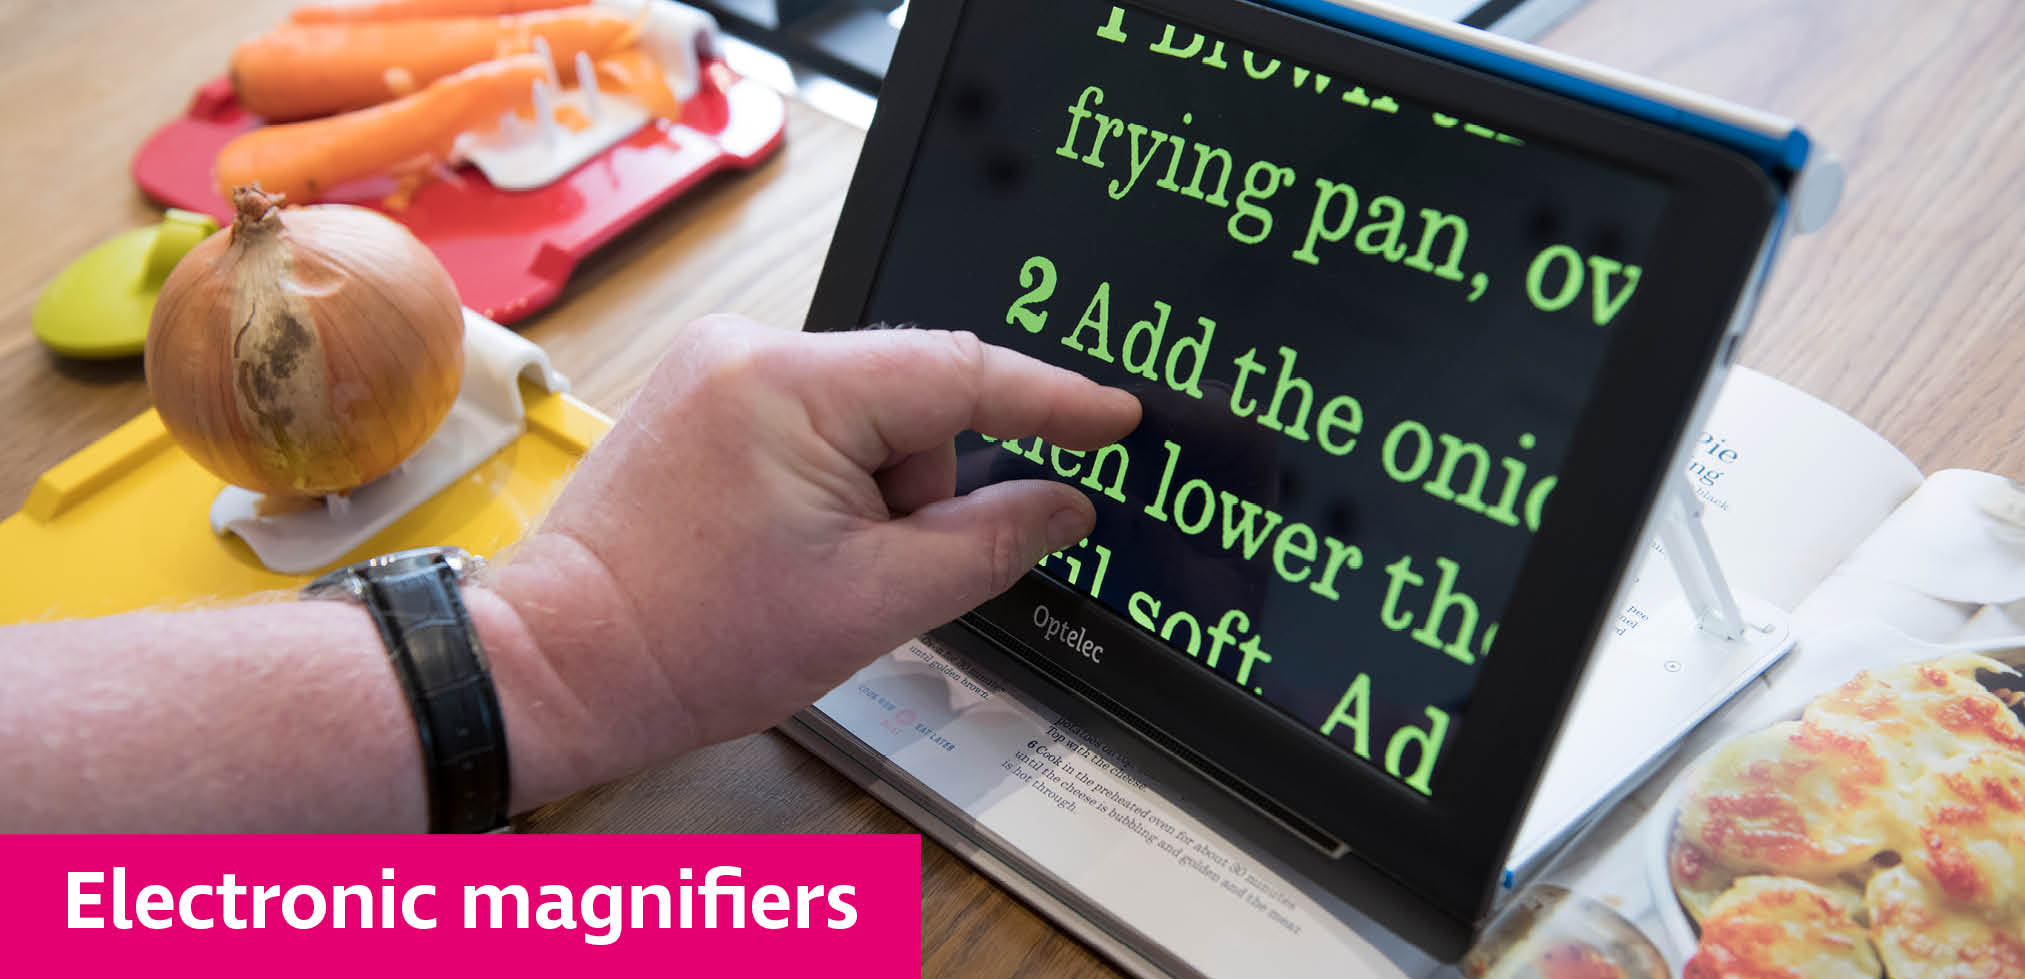 Portable magnifier being used to read a recipe book